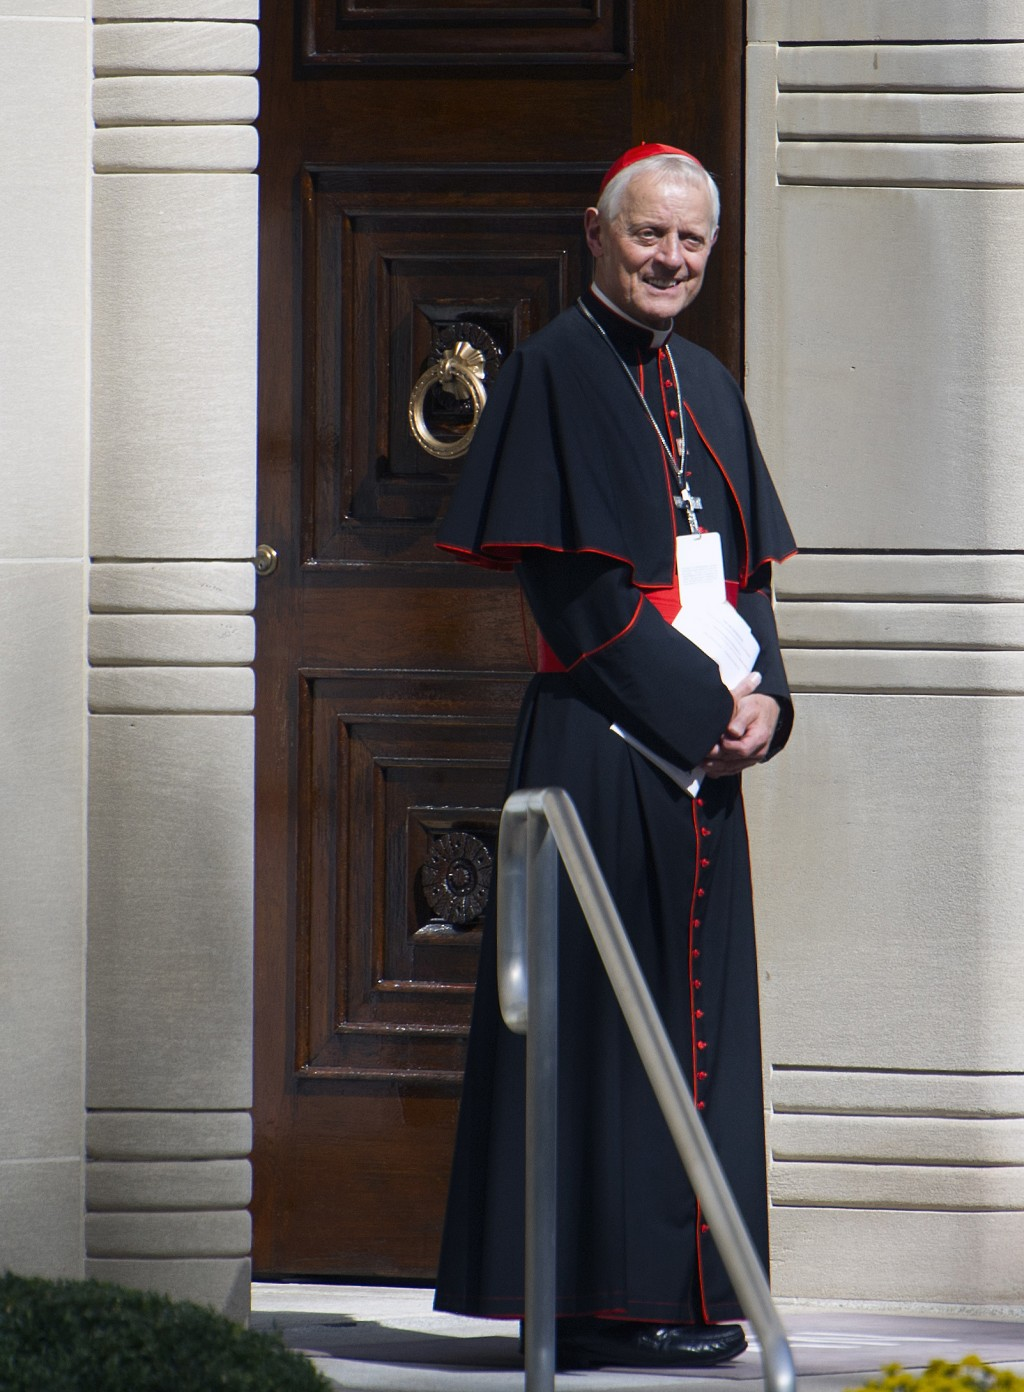 FILE - In this Wednesday, Sept. 23, 2015 file photo Cardinal Donald Wuerl, archbishop of Washington, stands in the doorway of the Apostolic Nunciature